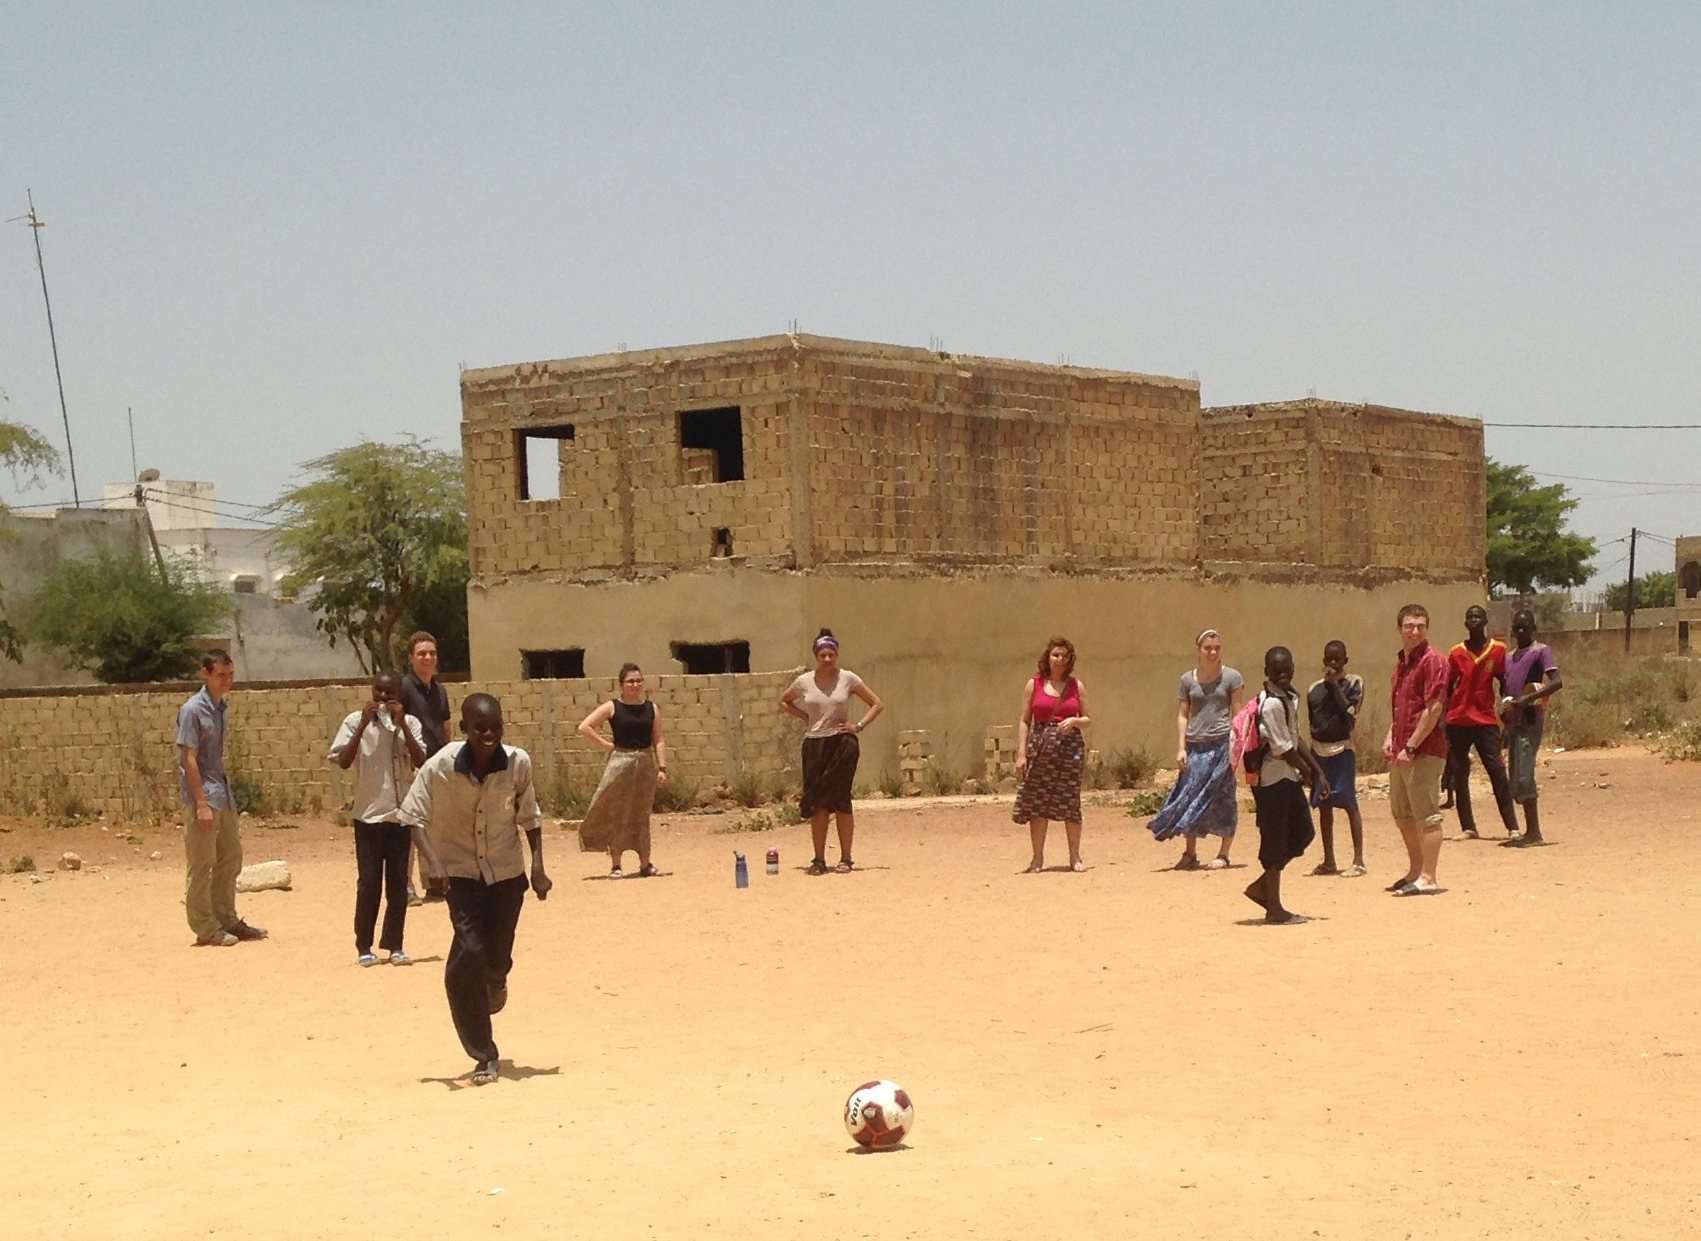 Futbol in Senegal with students and children creates a unique college program.